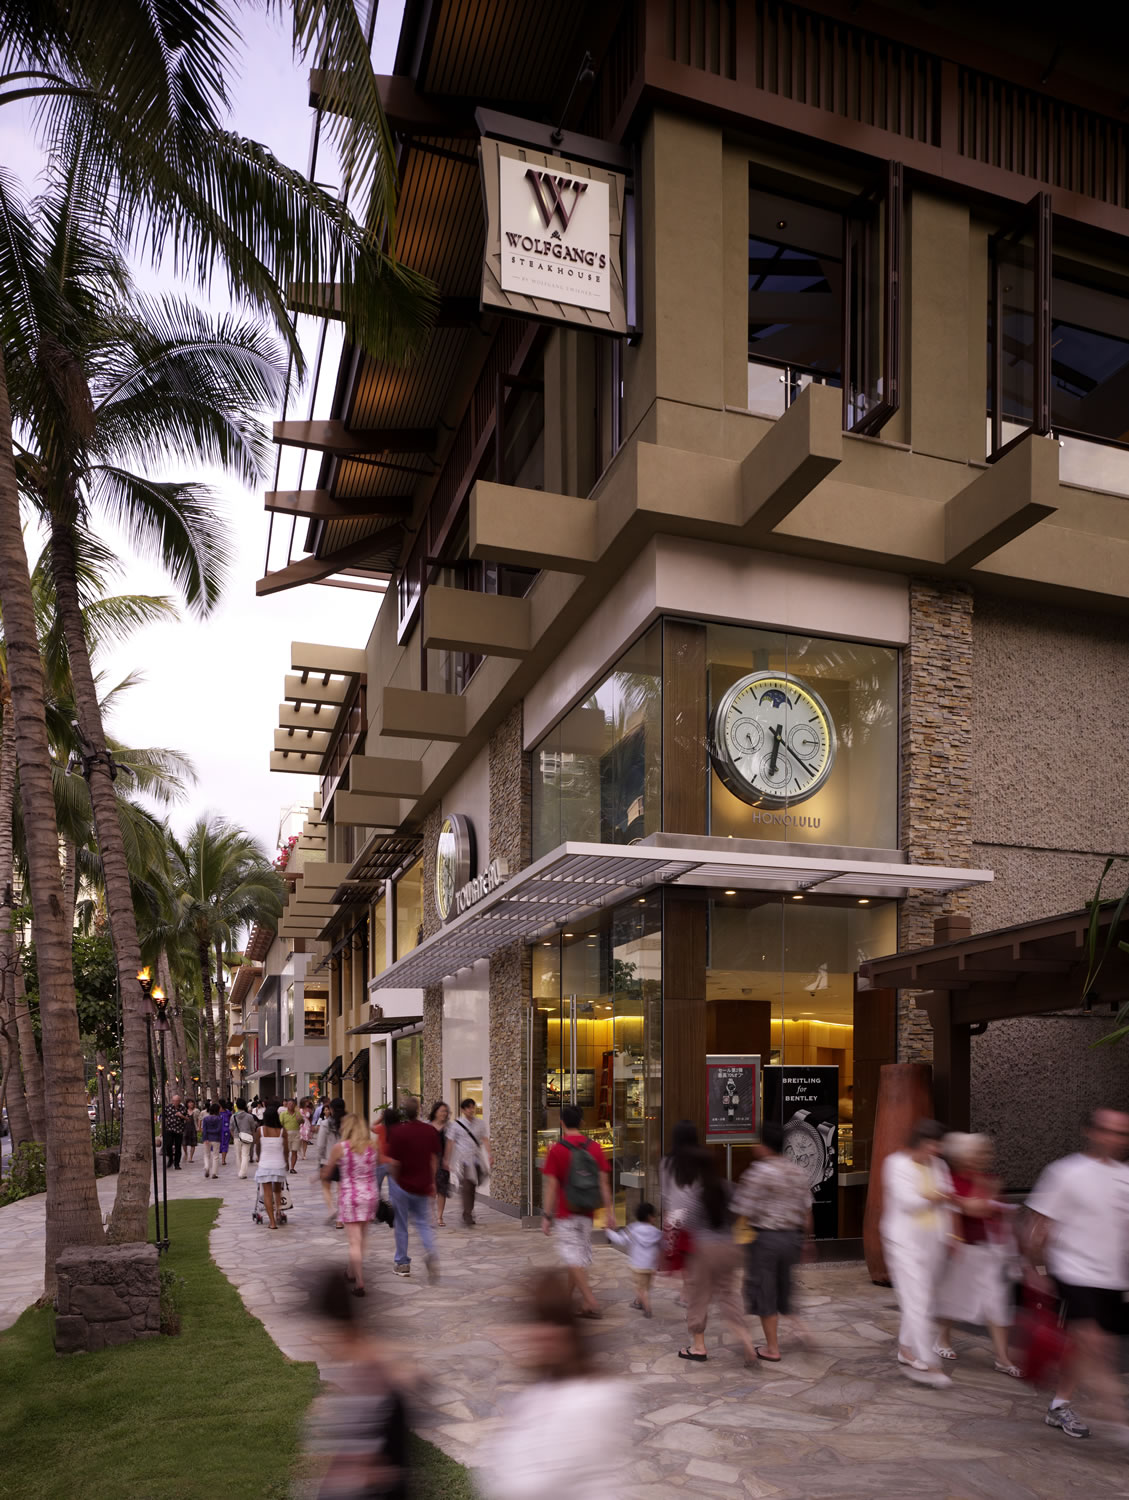 Photo courtesy Royal Hawaiian Center.